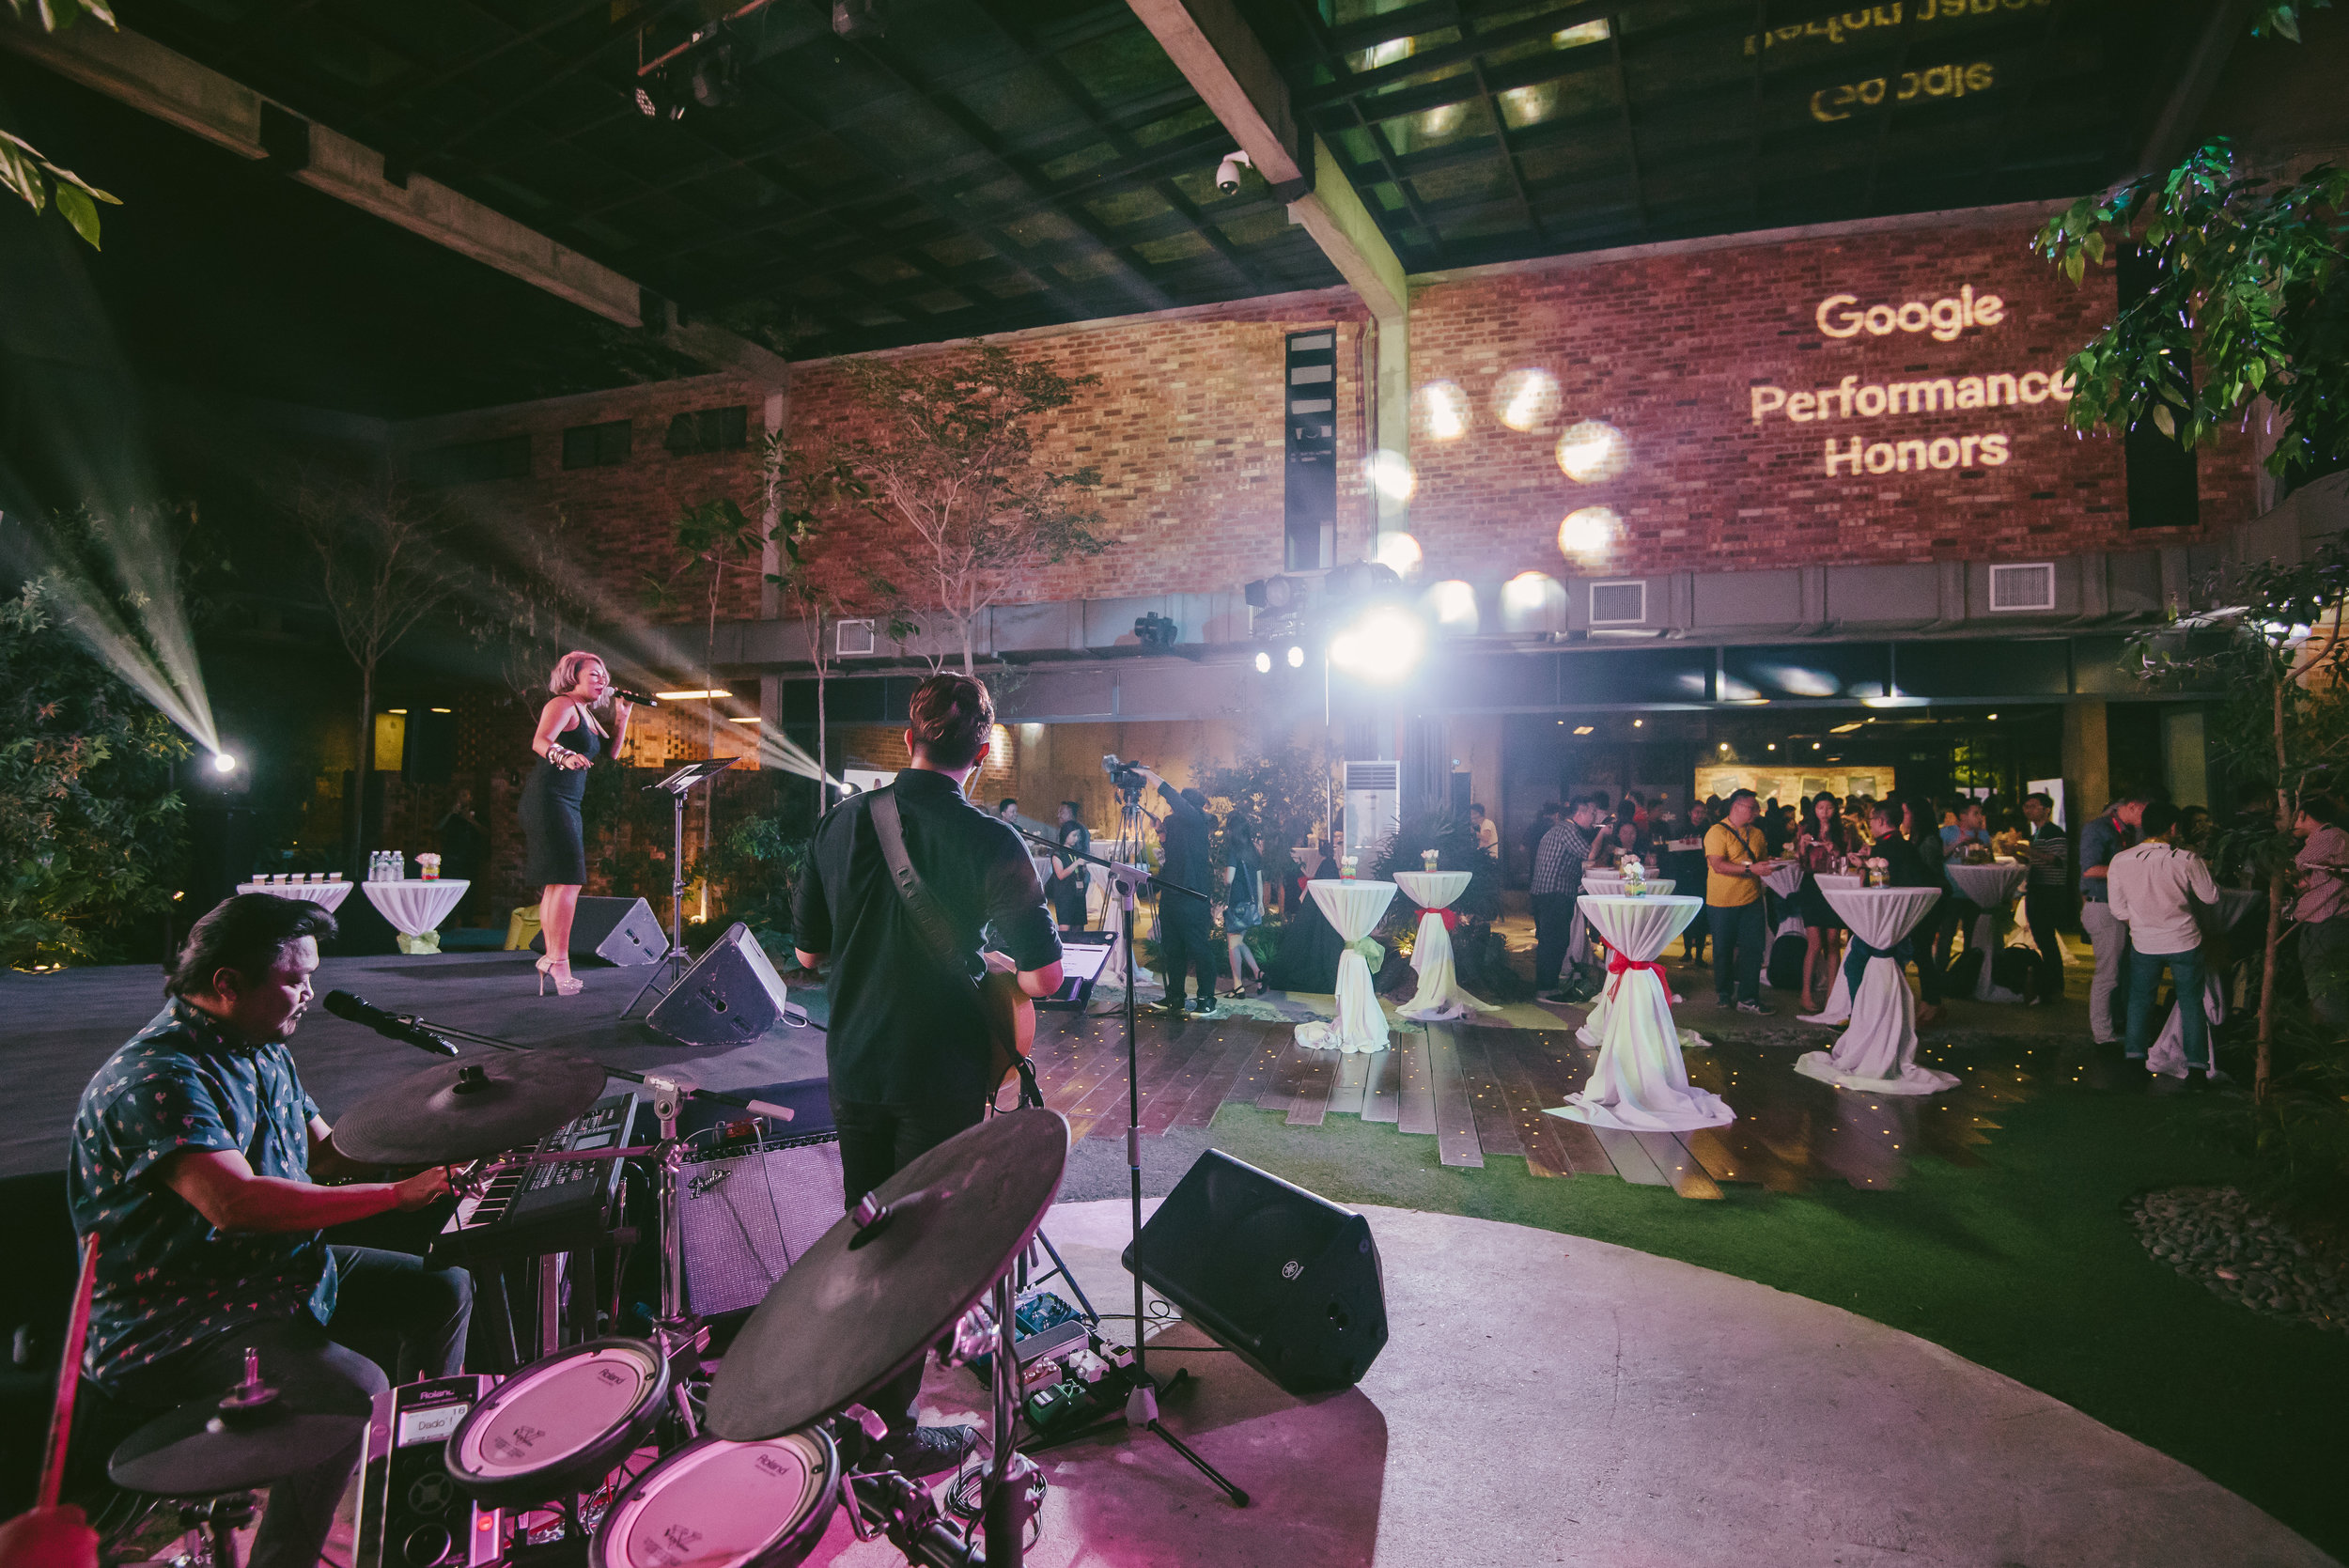 The venue was delightfully set up into a Google search engine, hosting the regions first ' Performance Honors'  awards. Glasshouse at Seputeh greeted the creative agencies that performed outstandingly in search ad campaigns in Asia-Pacific.